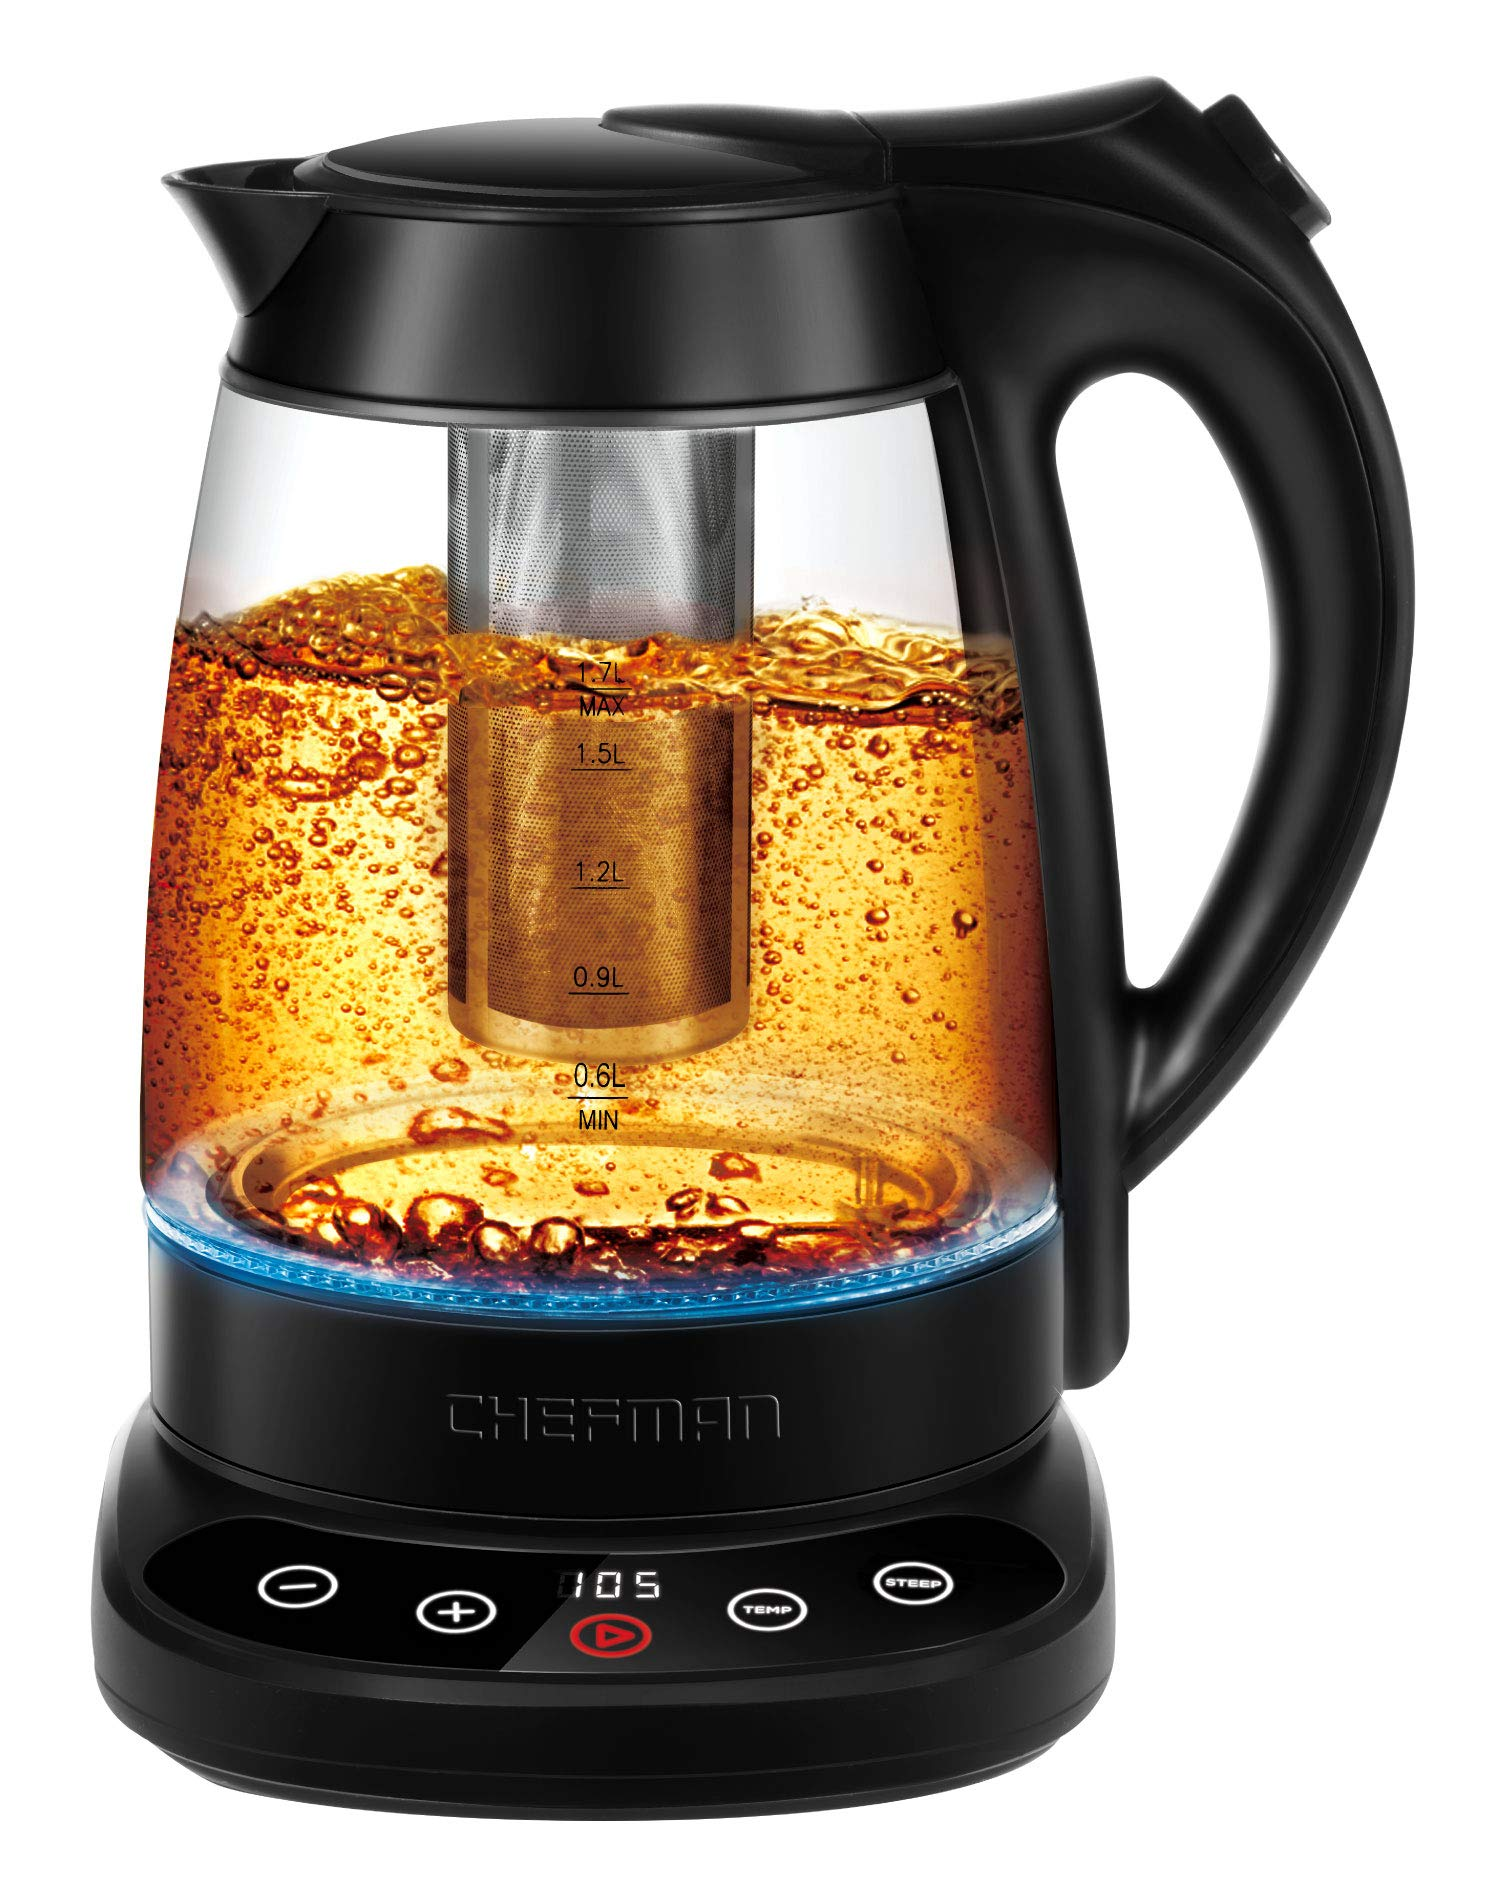 Chefman Digital Display Removable Tea Infuser Included, Cool Touch Handle, 360° Swivel Base, BPA Free, 1.7 Liter/1.8 Quart